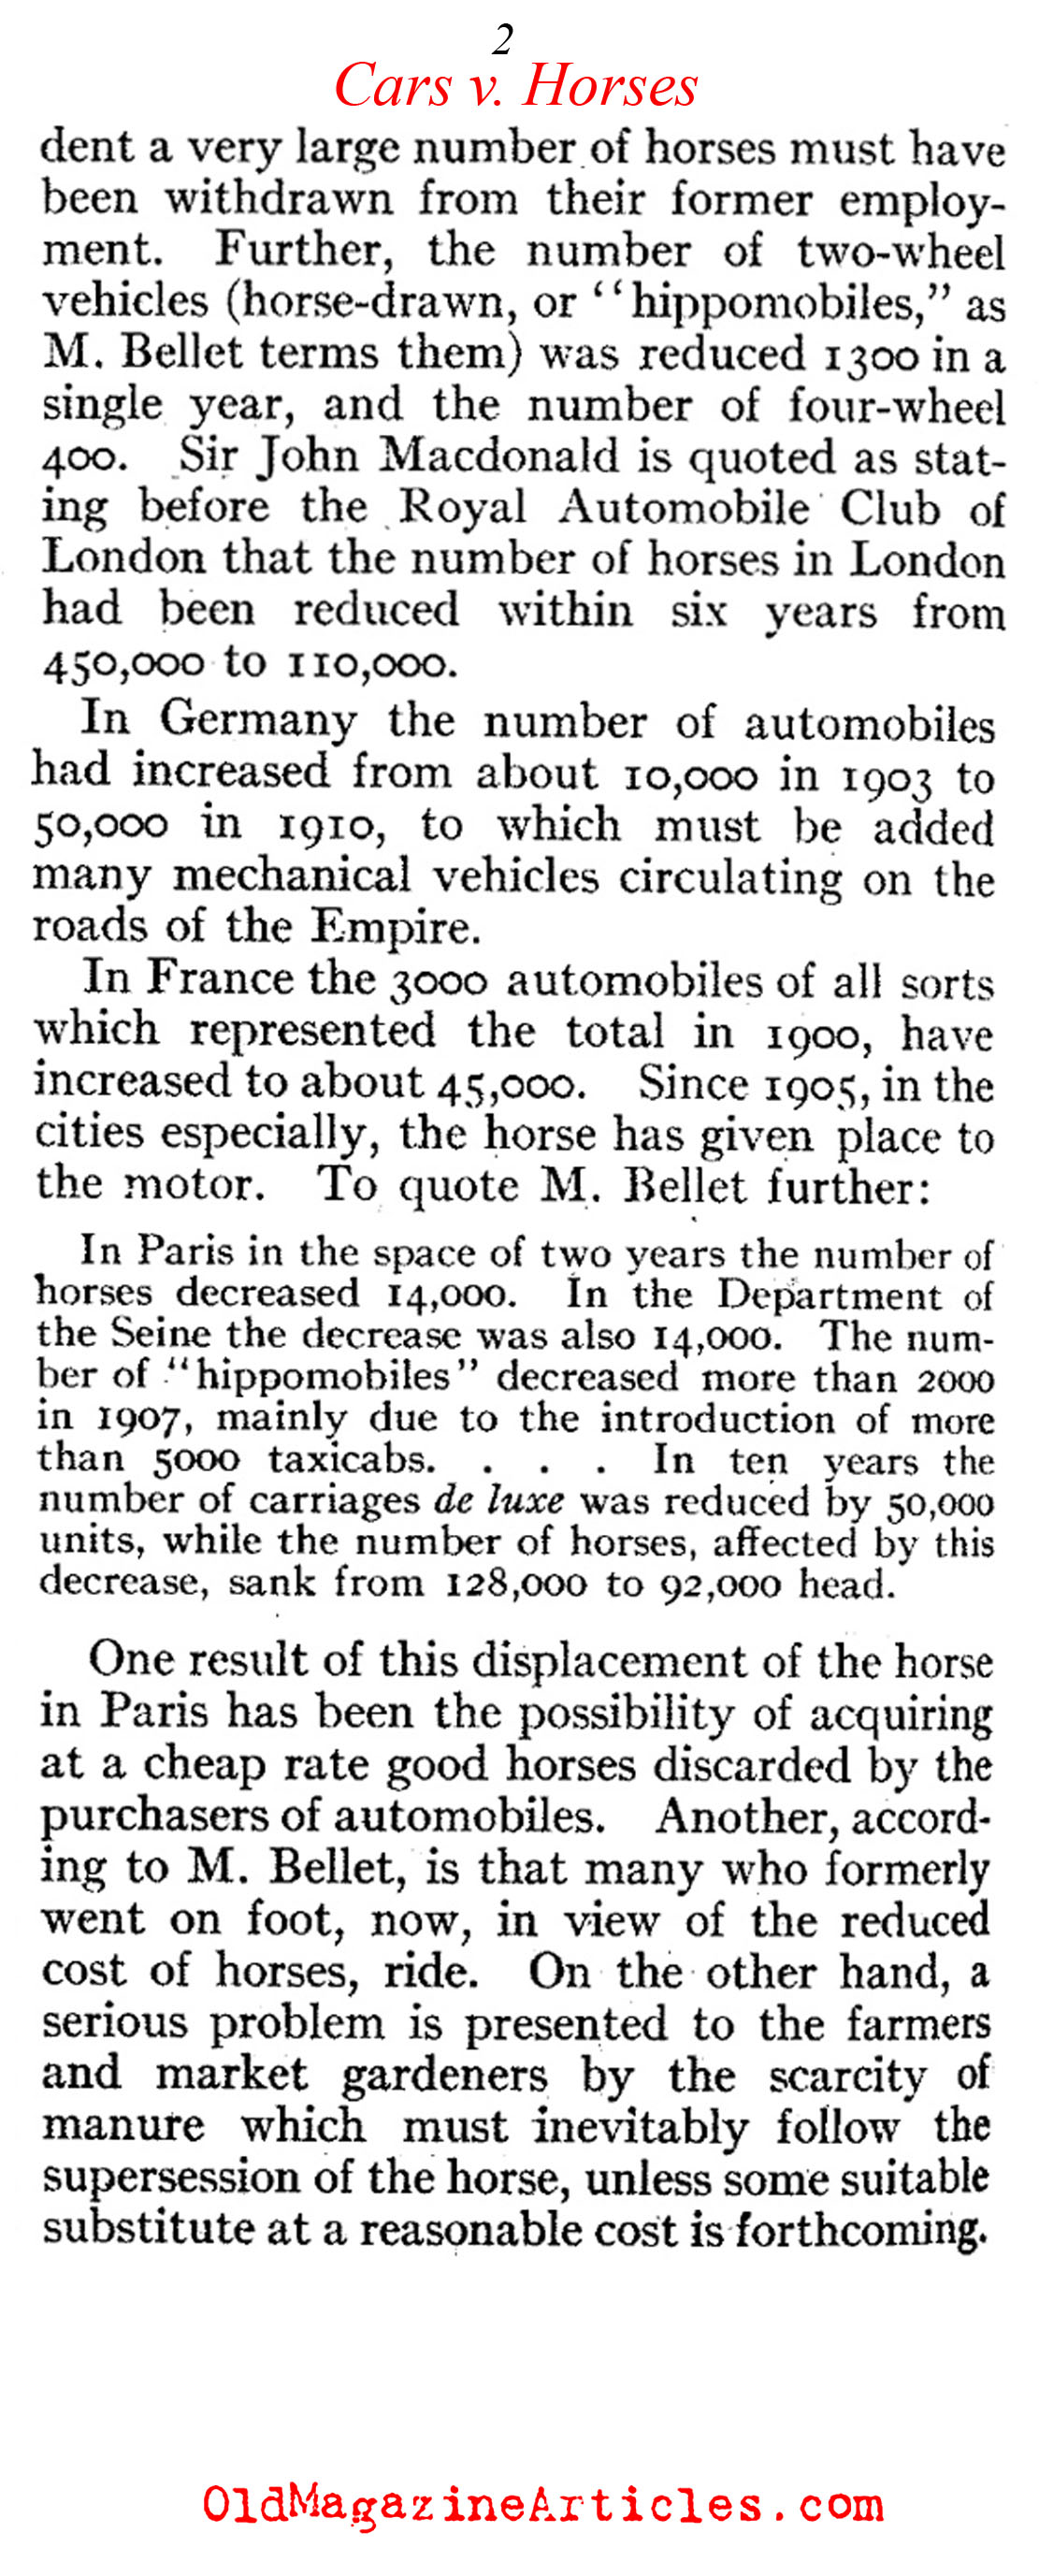 A Dramatic Growth in the Number of Cars (Review of Reviews, 1910)